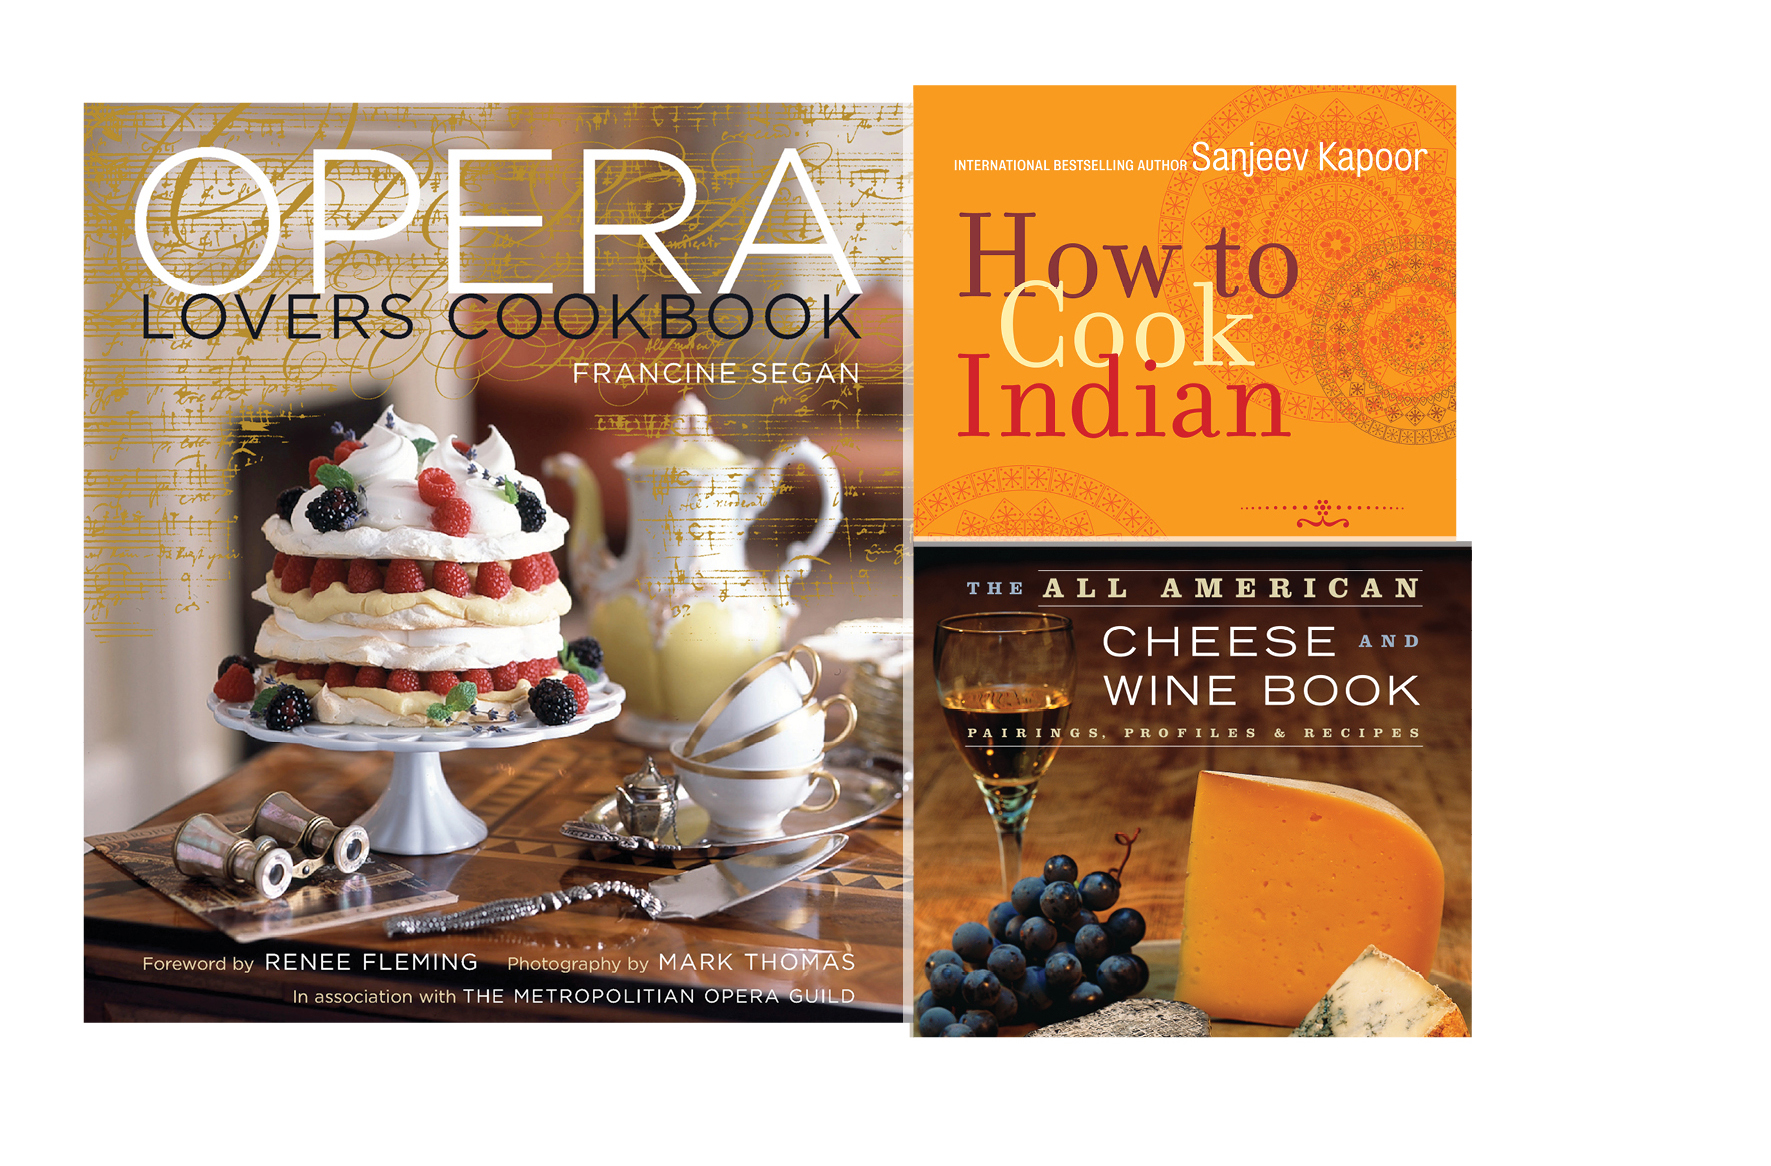 Cooking -   Opera Lovers Cookbook, How to Cook Indian, The All American Cheese and Wine Book